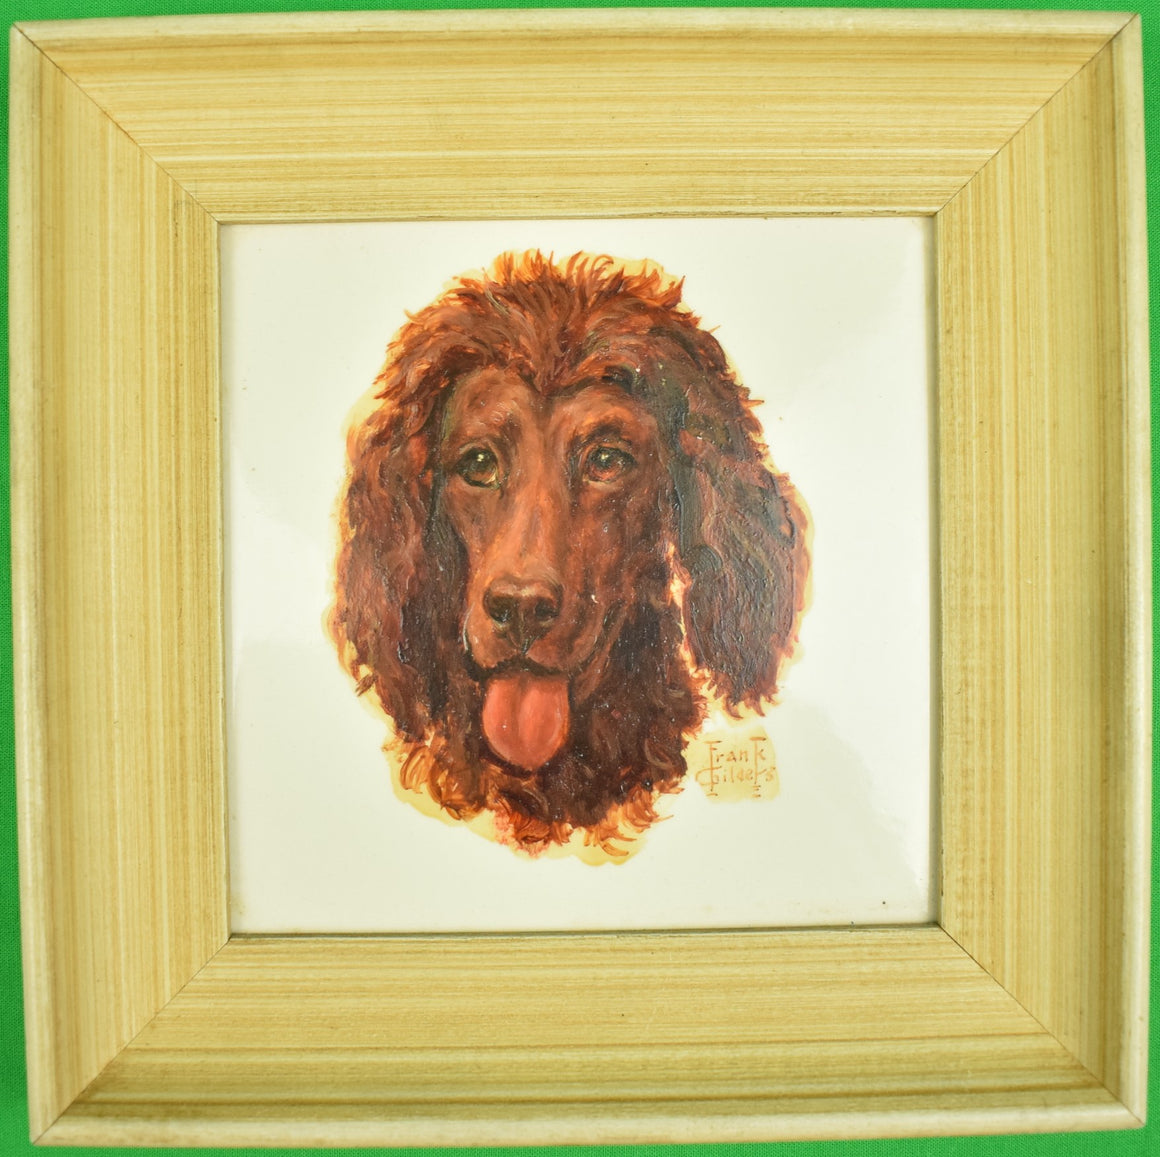 Abercrombie & Fitch Hand-Painted Dog Head by Frank Childers Framed Tile